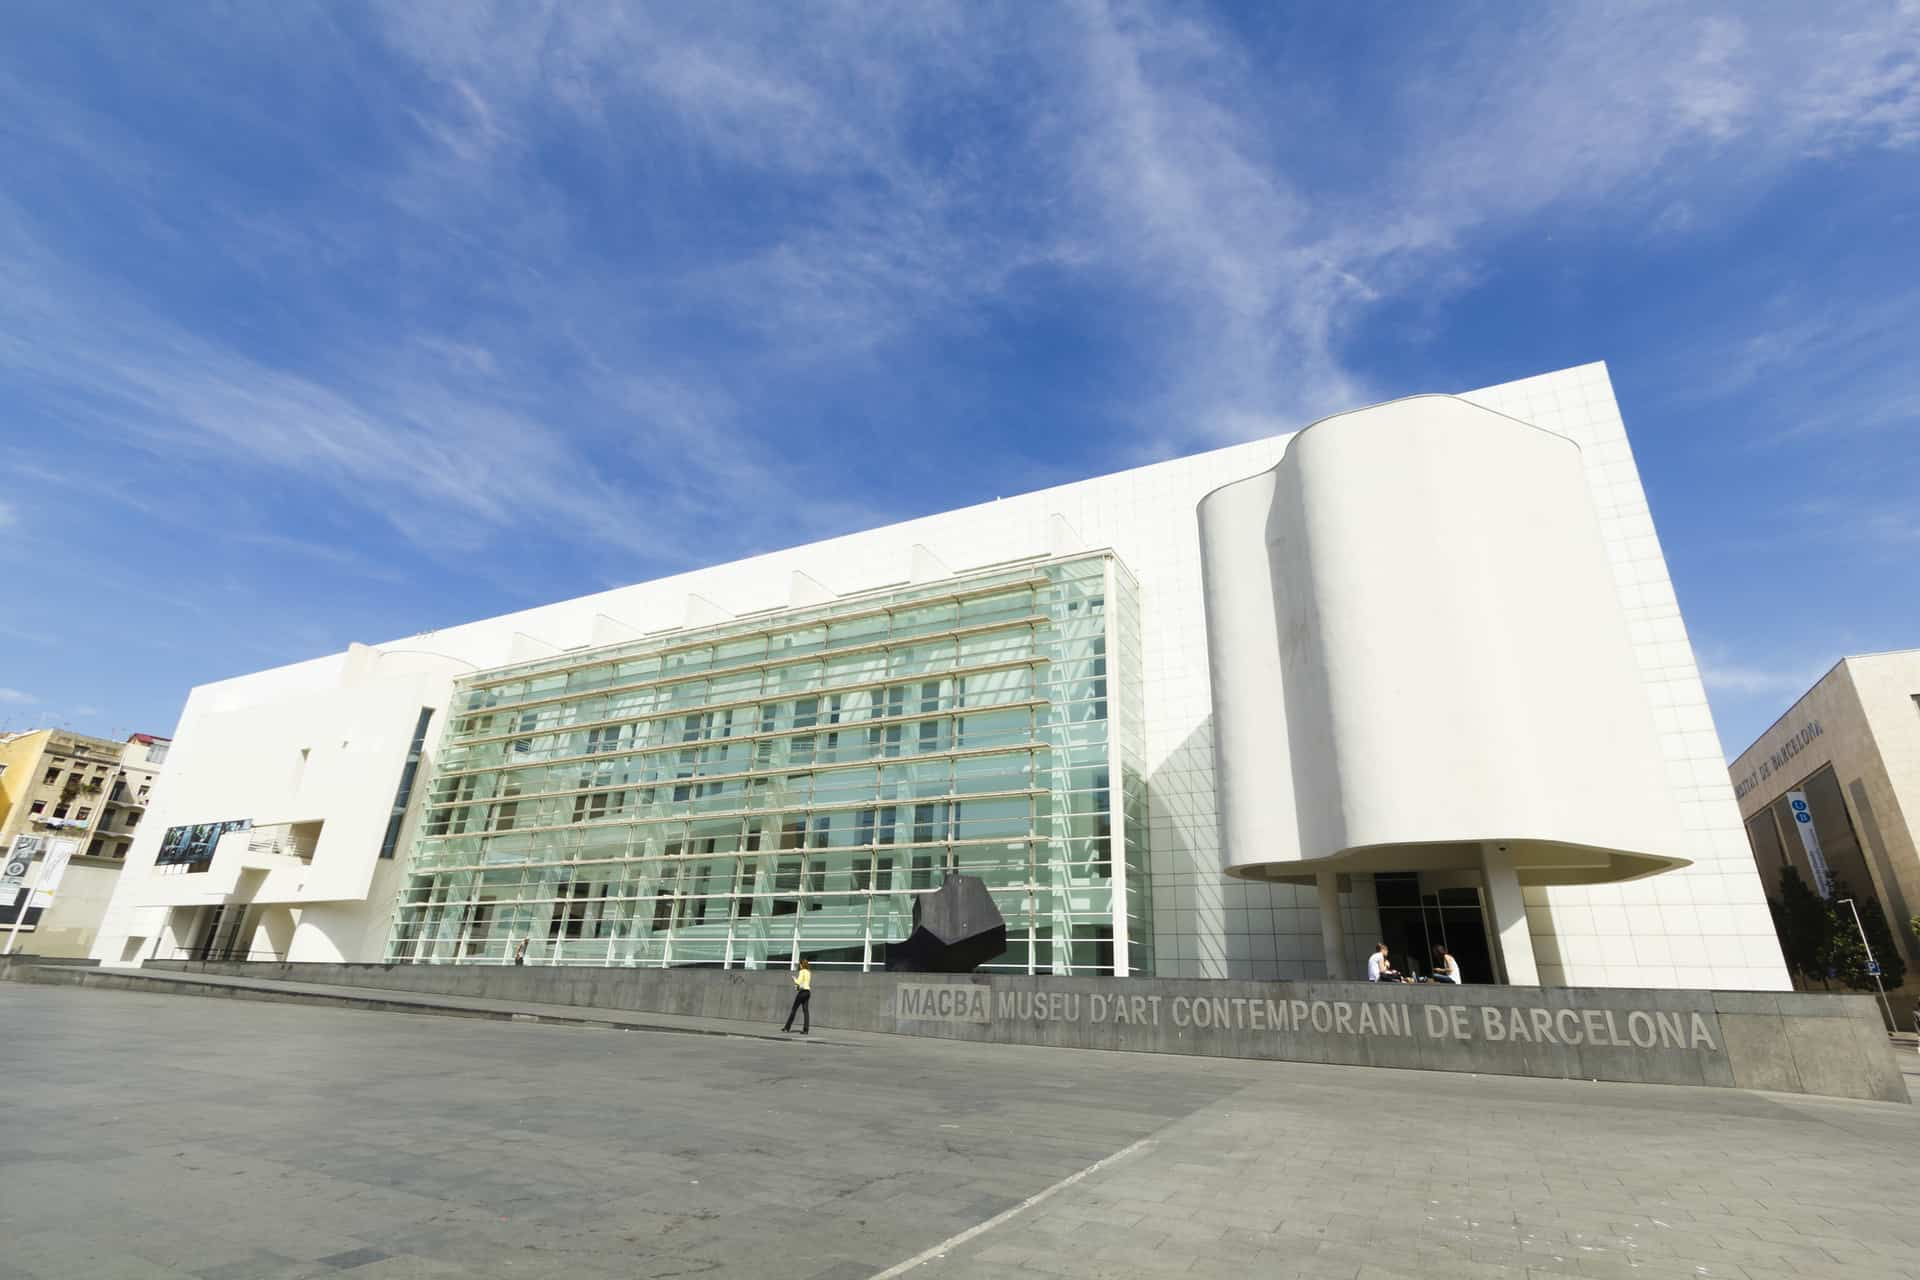 Macba Museum In Barcelona, Spain.